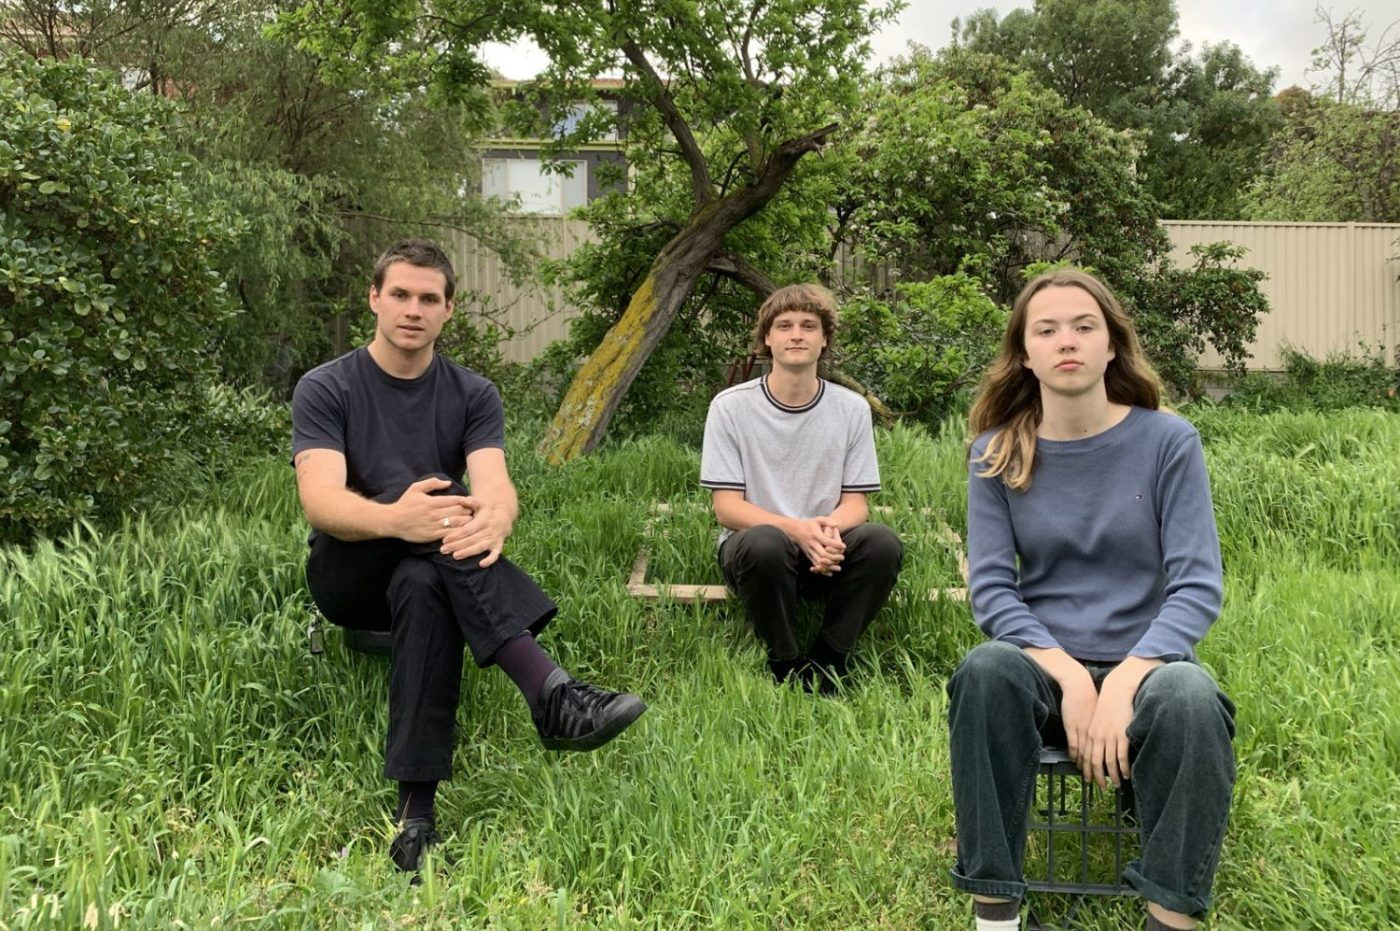 Emerging punks CLAMM make their Melbourne Music Week debut at The Curtin